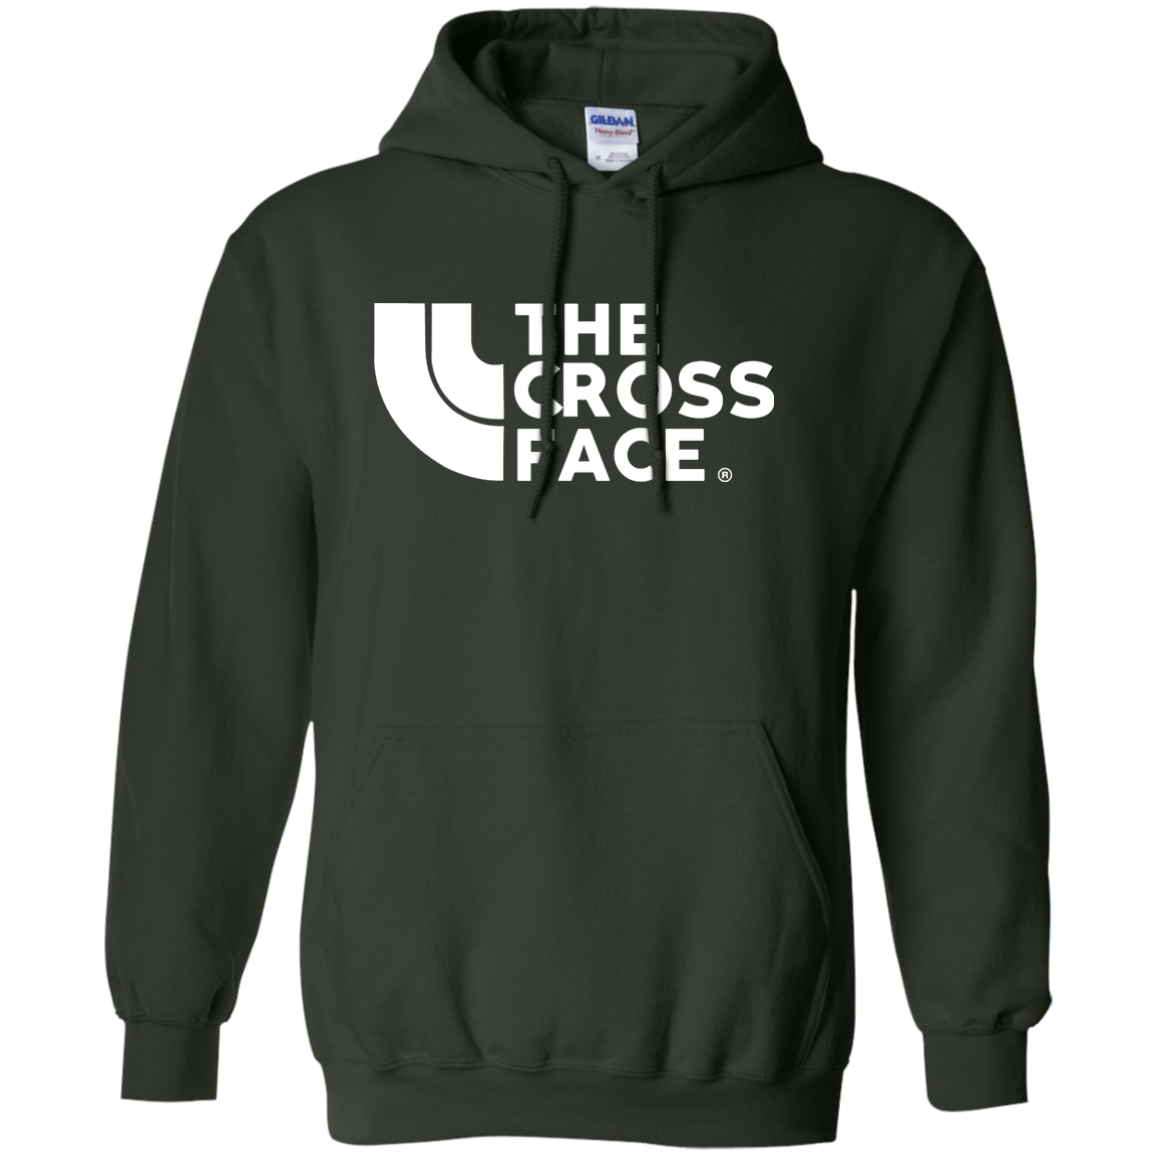 image 352px The Cross Face T Shirt, Hoodies, Tank Top